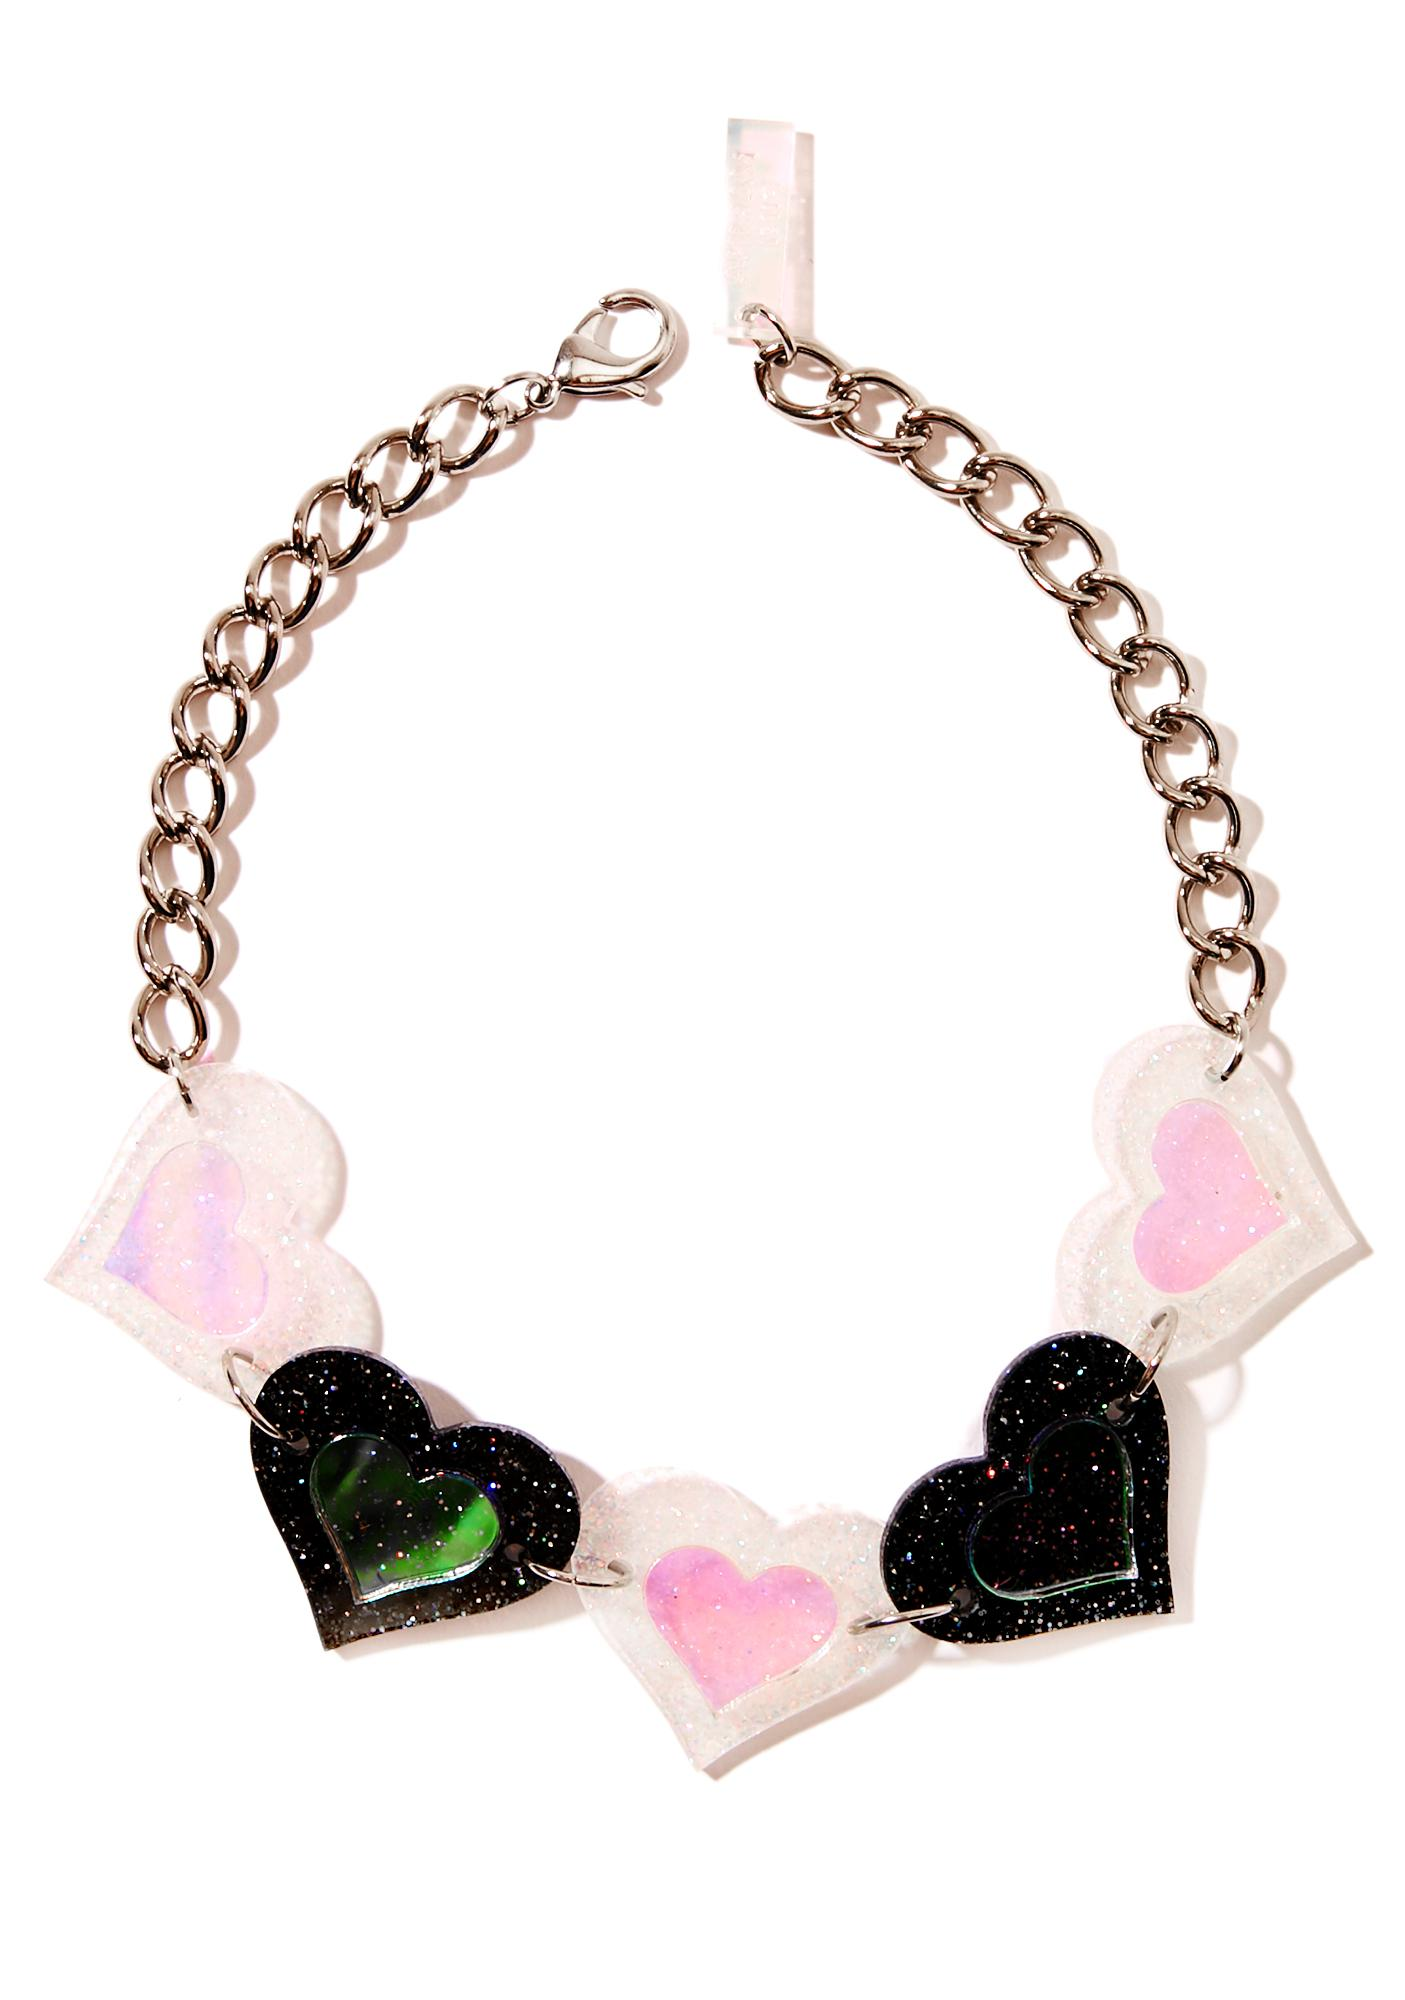 Marina Fini Black And White Heart Choker